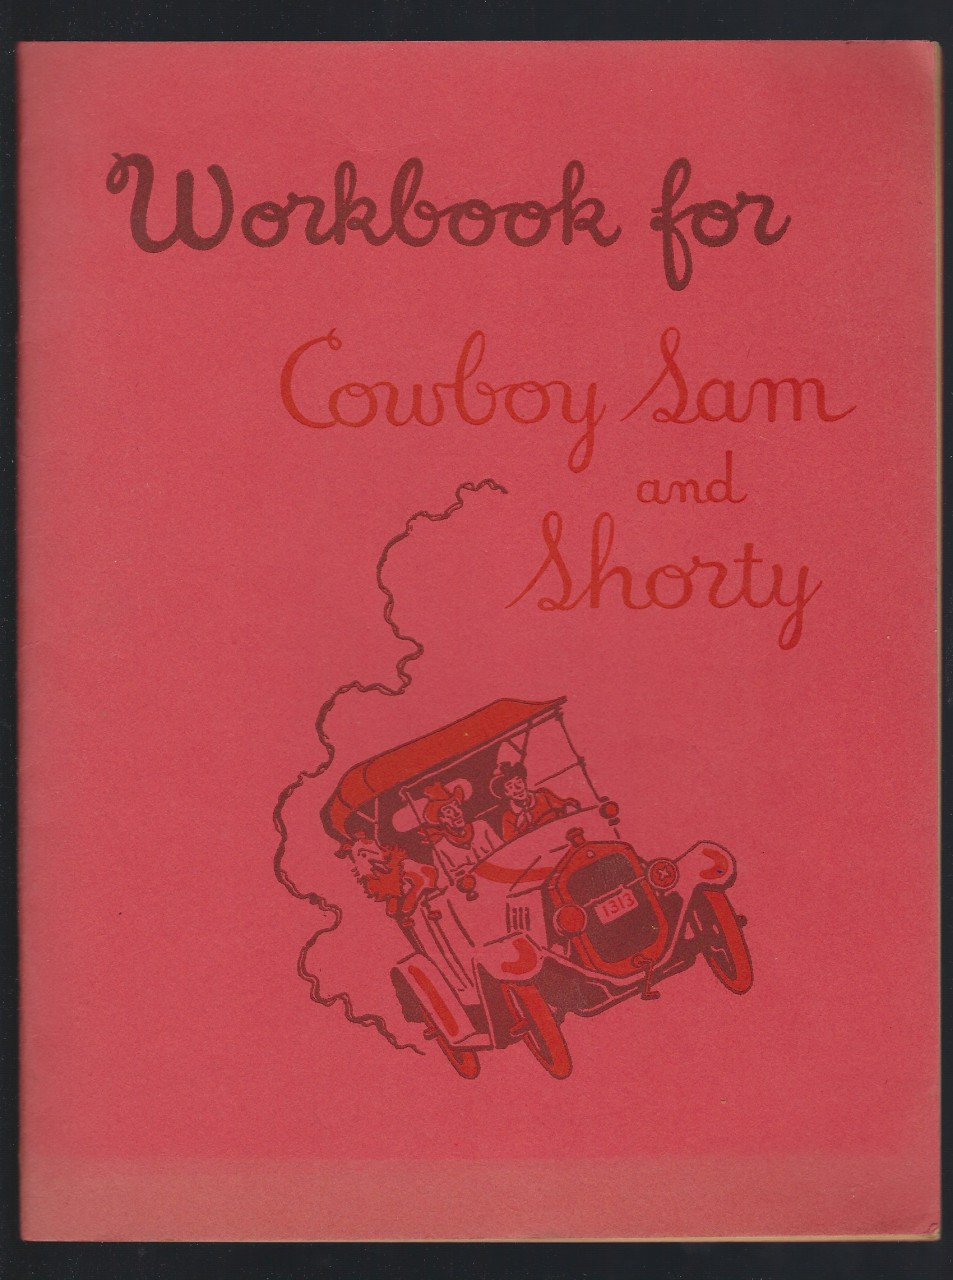 Image for Workbook for Cowboy Sam and Shorty 1956